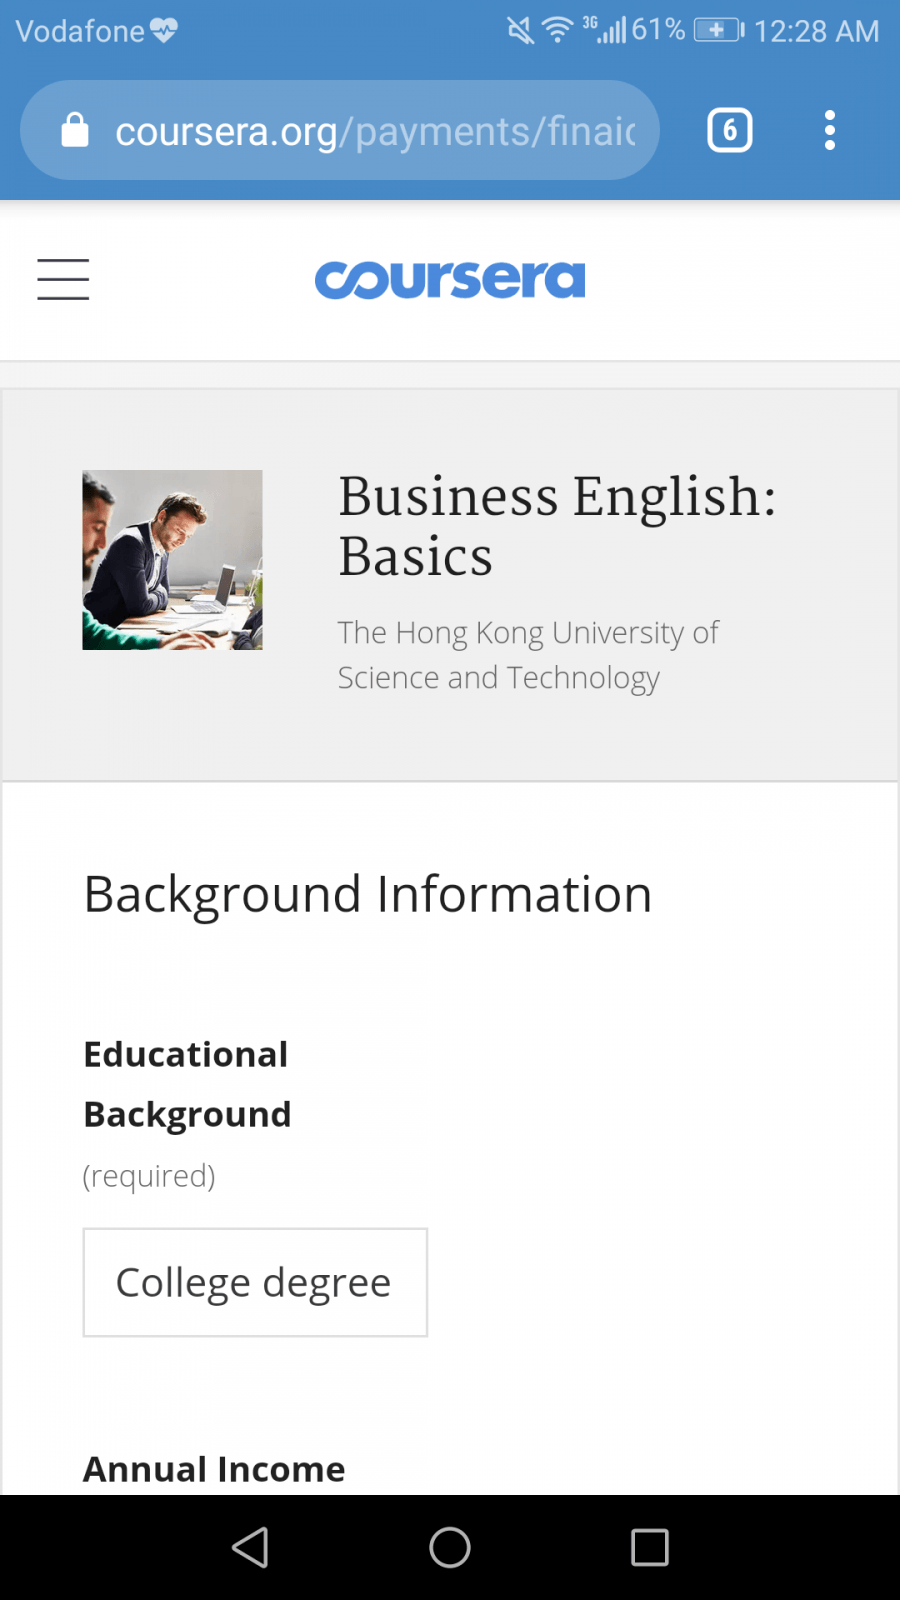 Business English for Non-Native Speakers Specialization